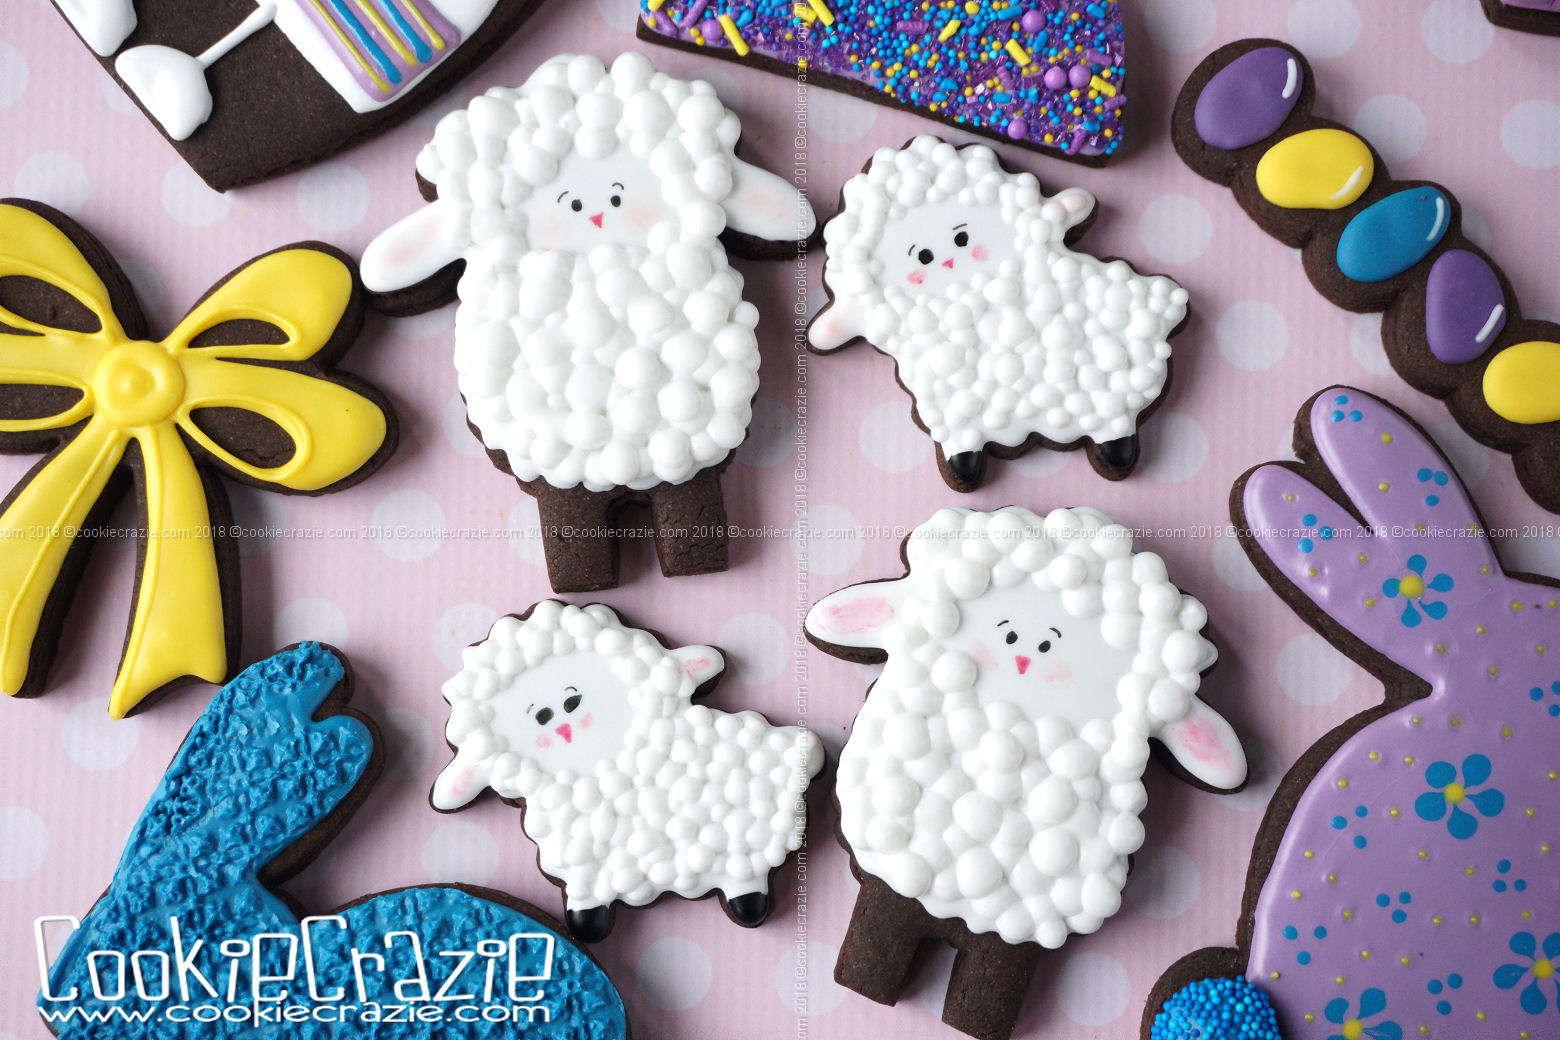 Lamb Decorated Sugar Cookies YouTube video  HERE  Lamb cutter found  HERE